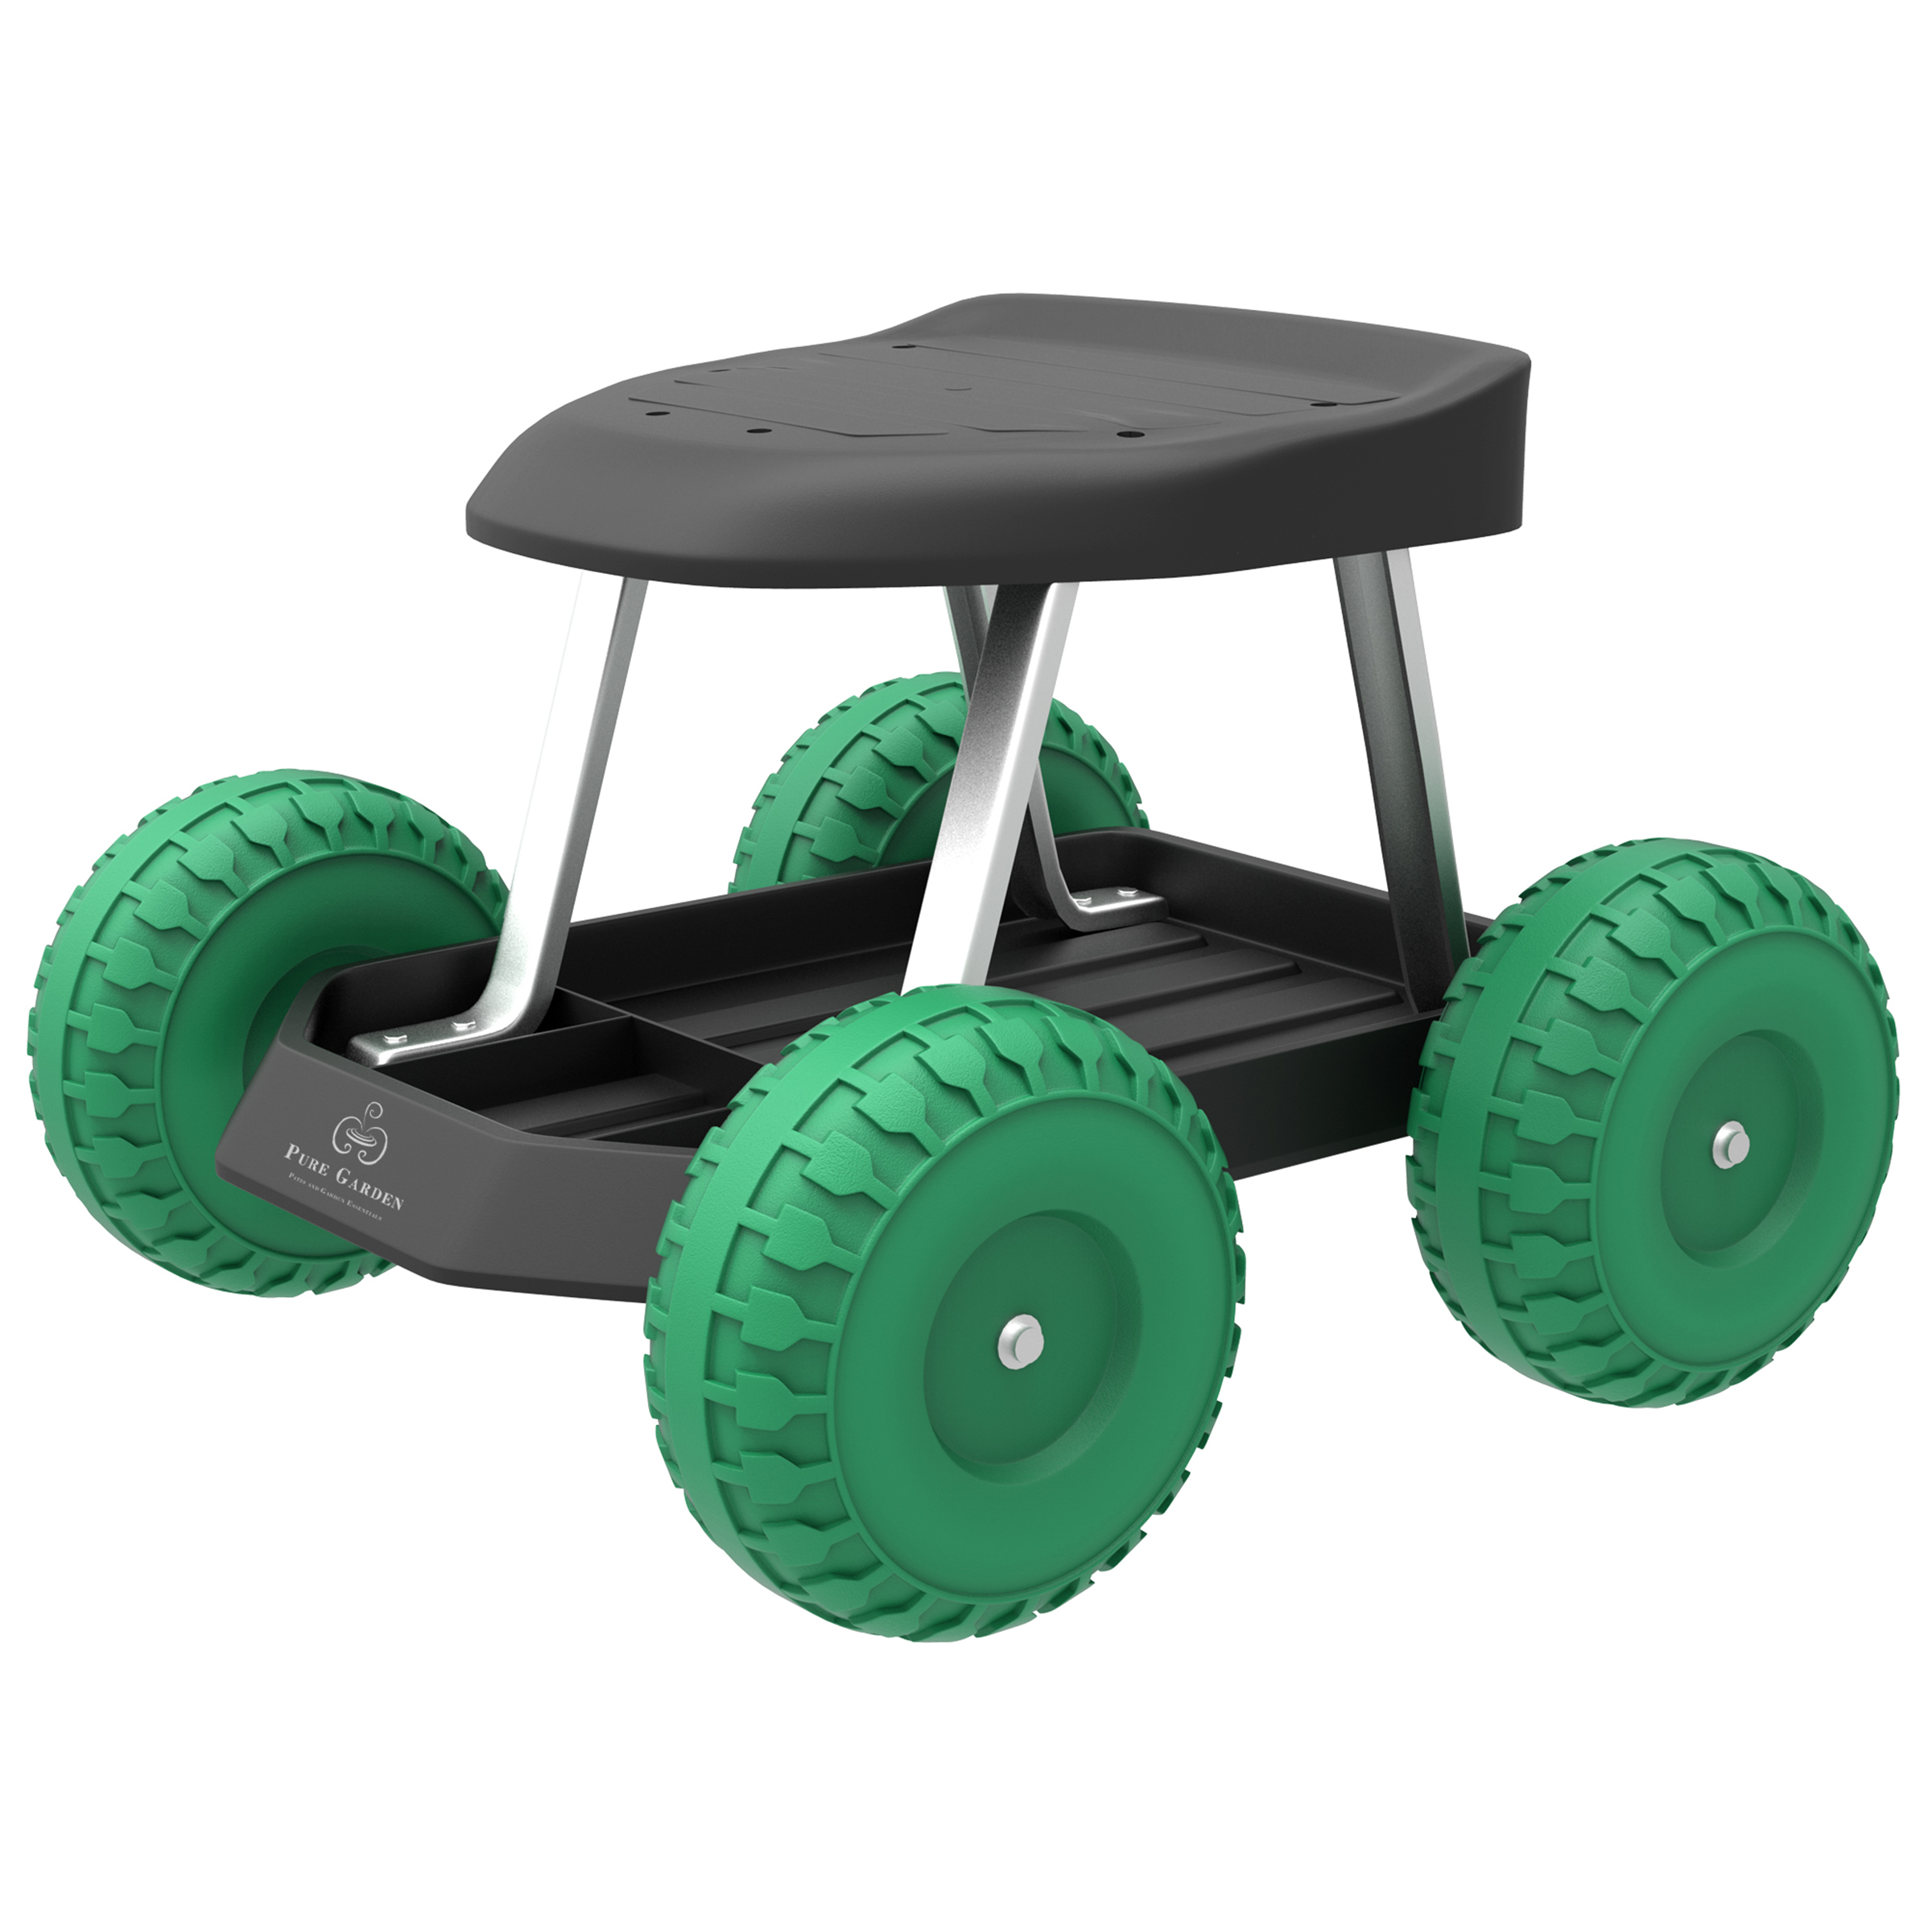 garden cart. Garden Cart Rolling Scooter With Seat And Tool Tray For Weeding, Gardening, Outdoor